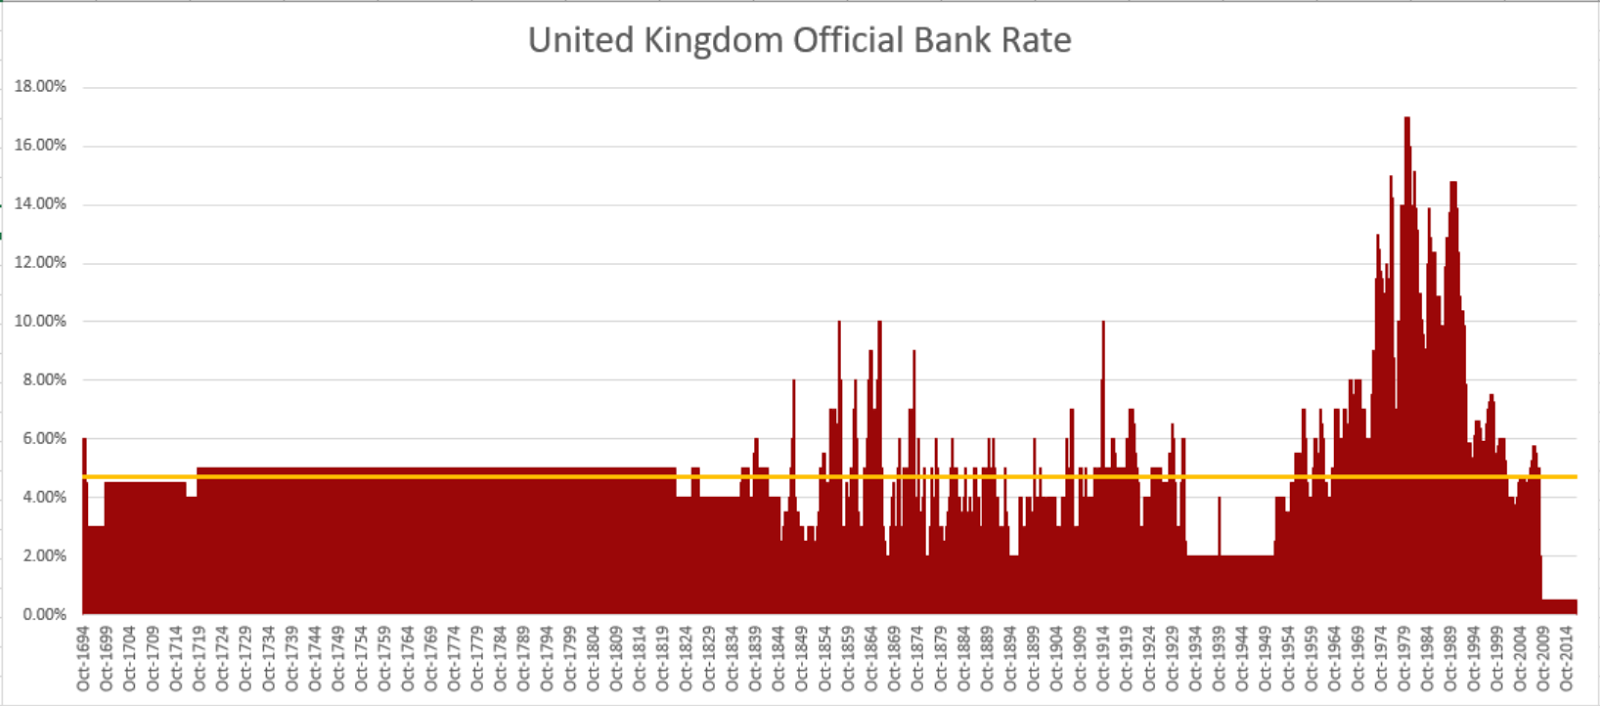 Historical Official Interest Rates